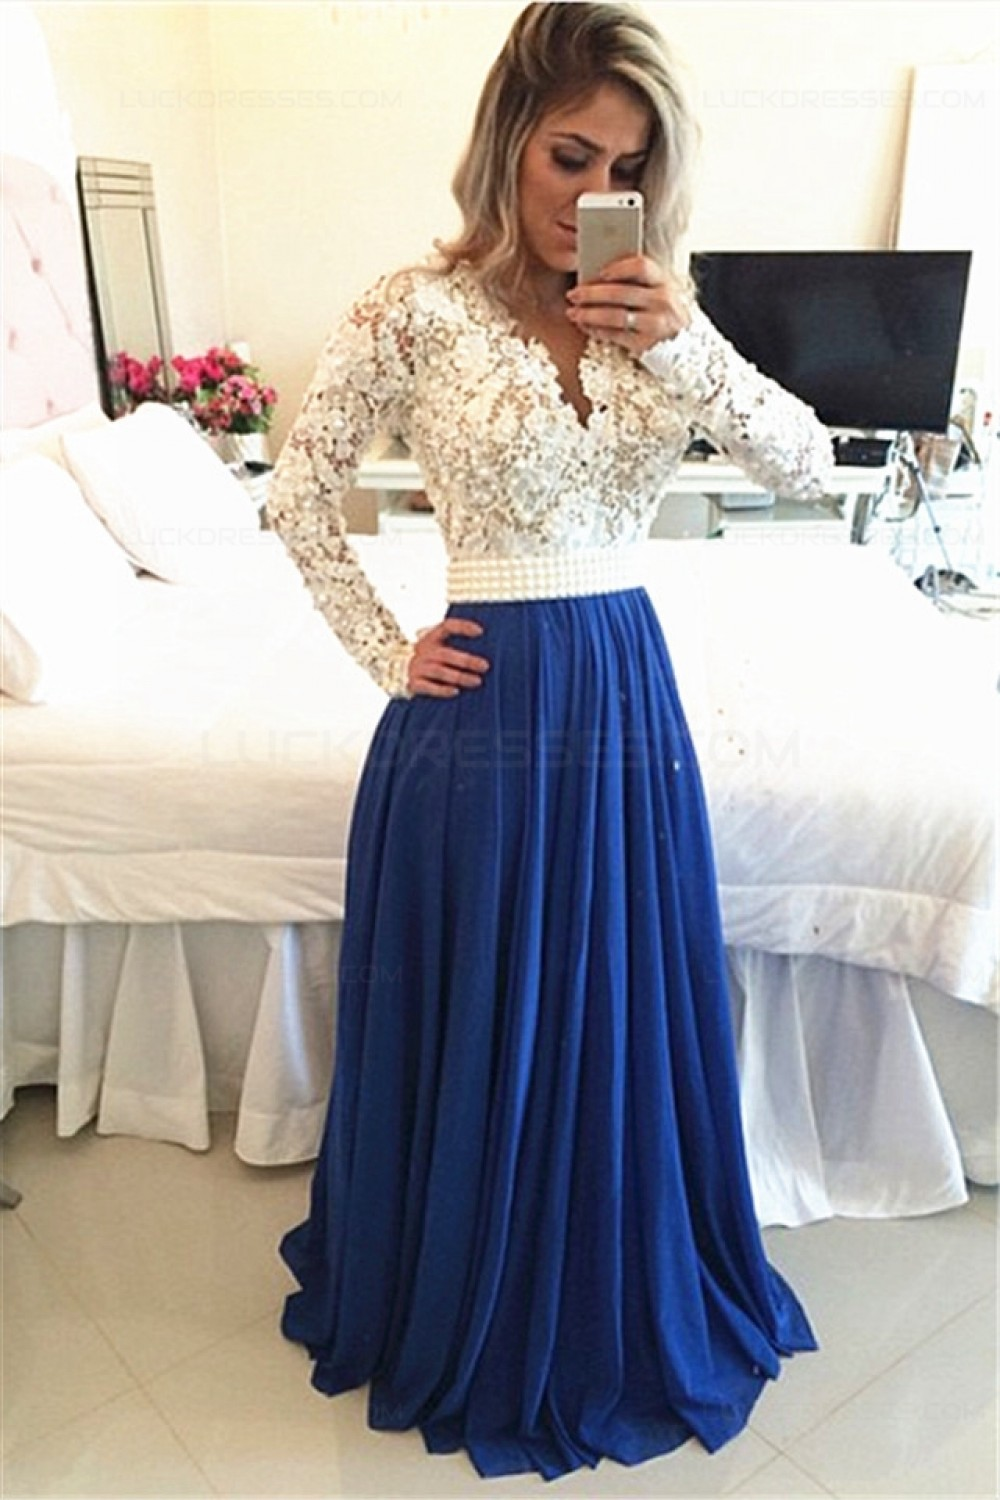 913c831d38 Royal Blue White Lace Chiffon Long Sleeves Prom Dresses Evening Gowns  3020208